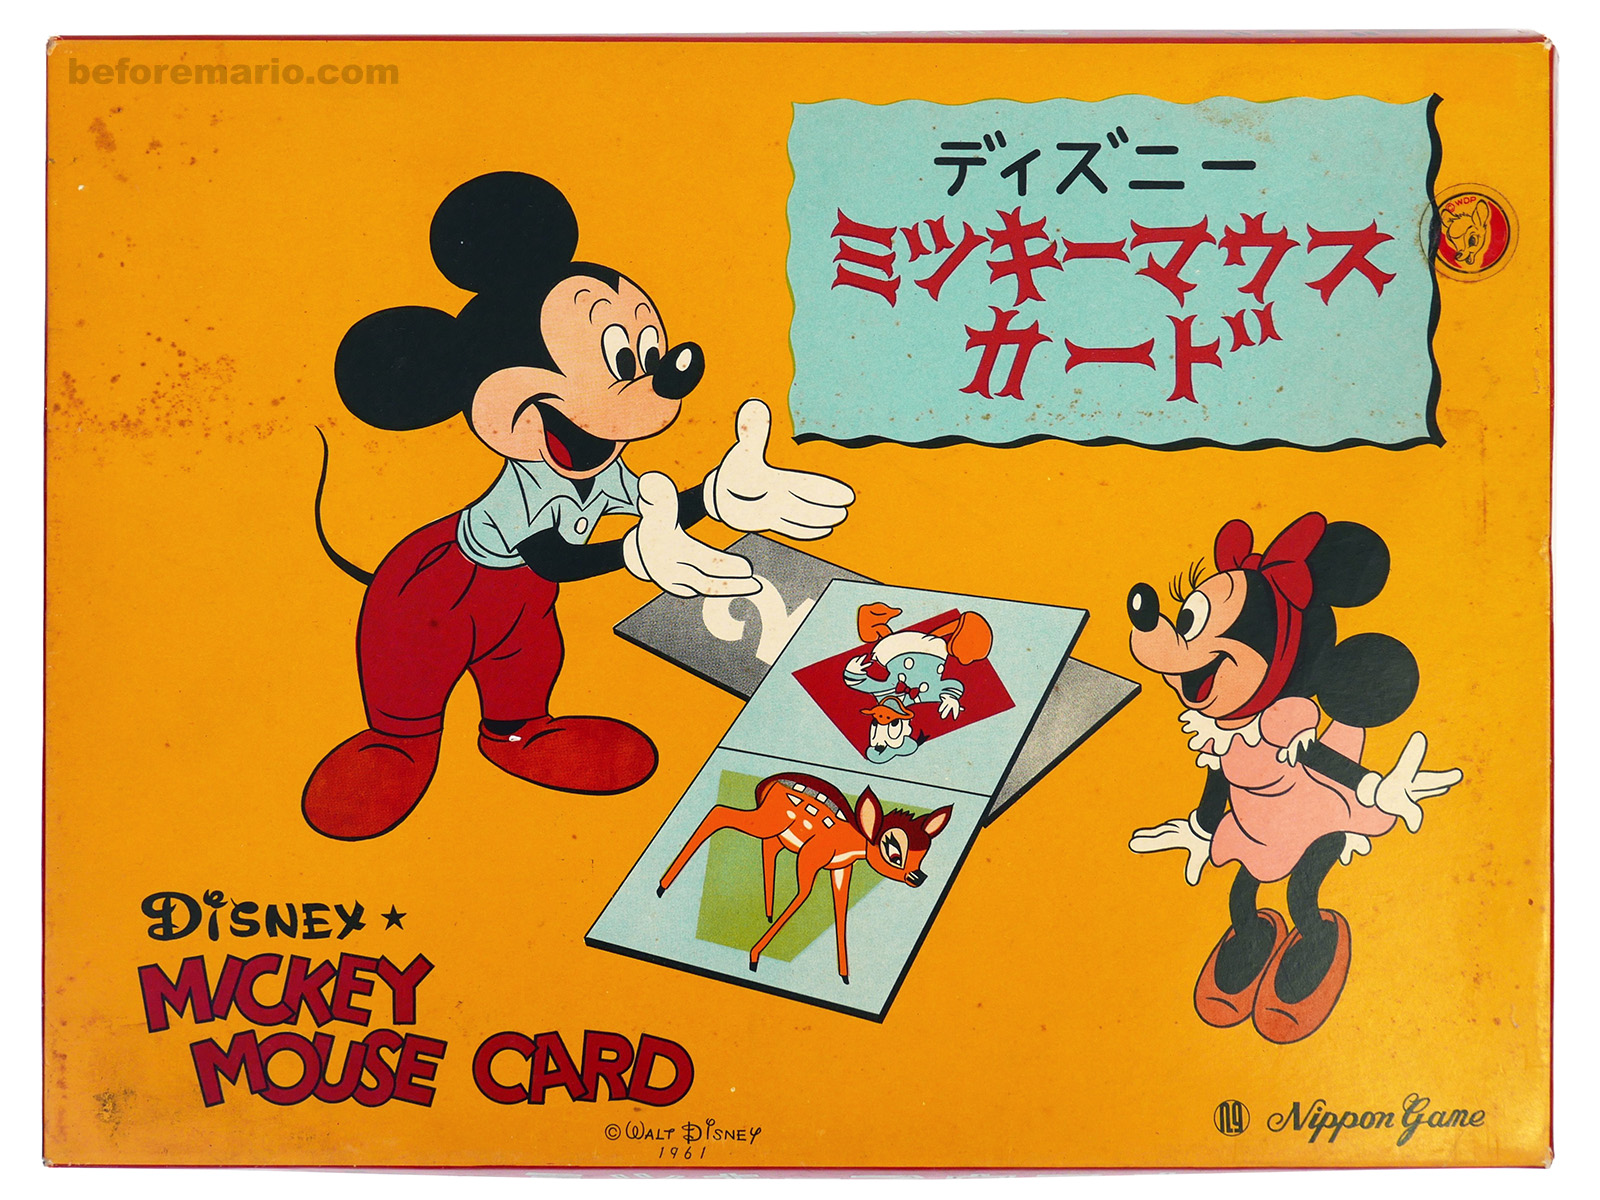 Beautiful beforemario: Nintendo Mickey Mouse Card (ミッキーマウスカード, 1963) GS15